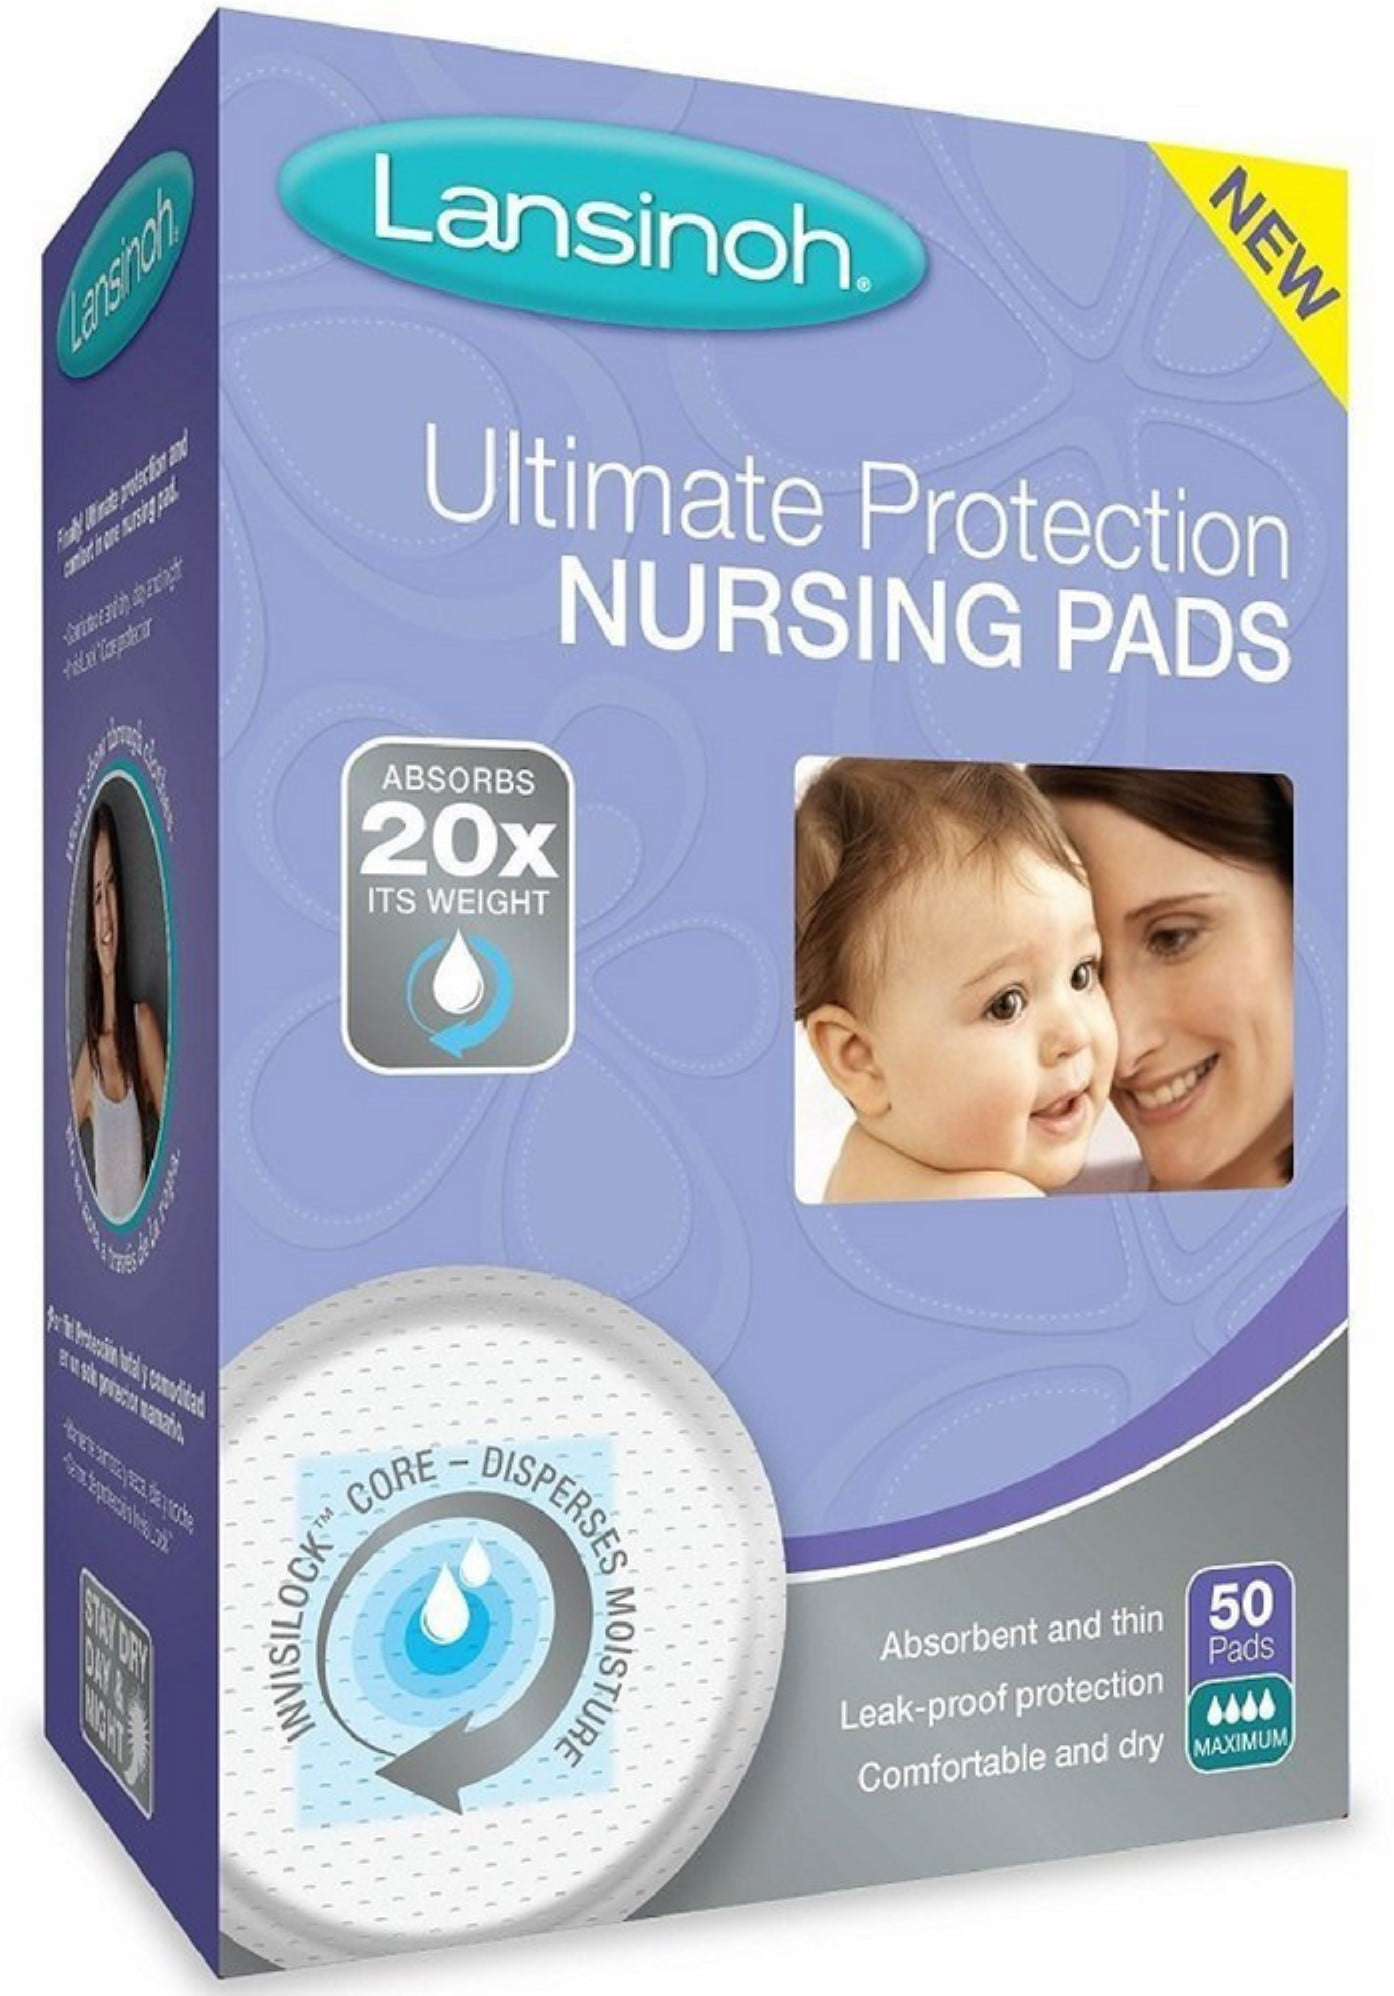 Lansinoh Ultimate Protection Nursing Pads 50 ea (Pack of 4) by Lansinoh